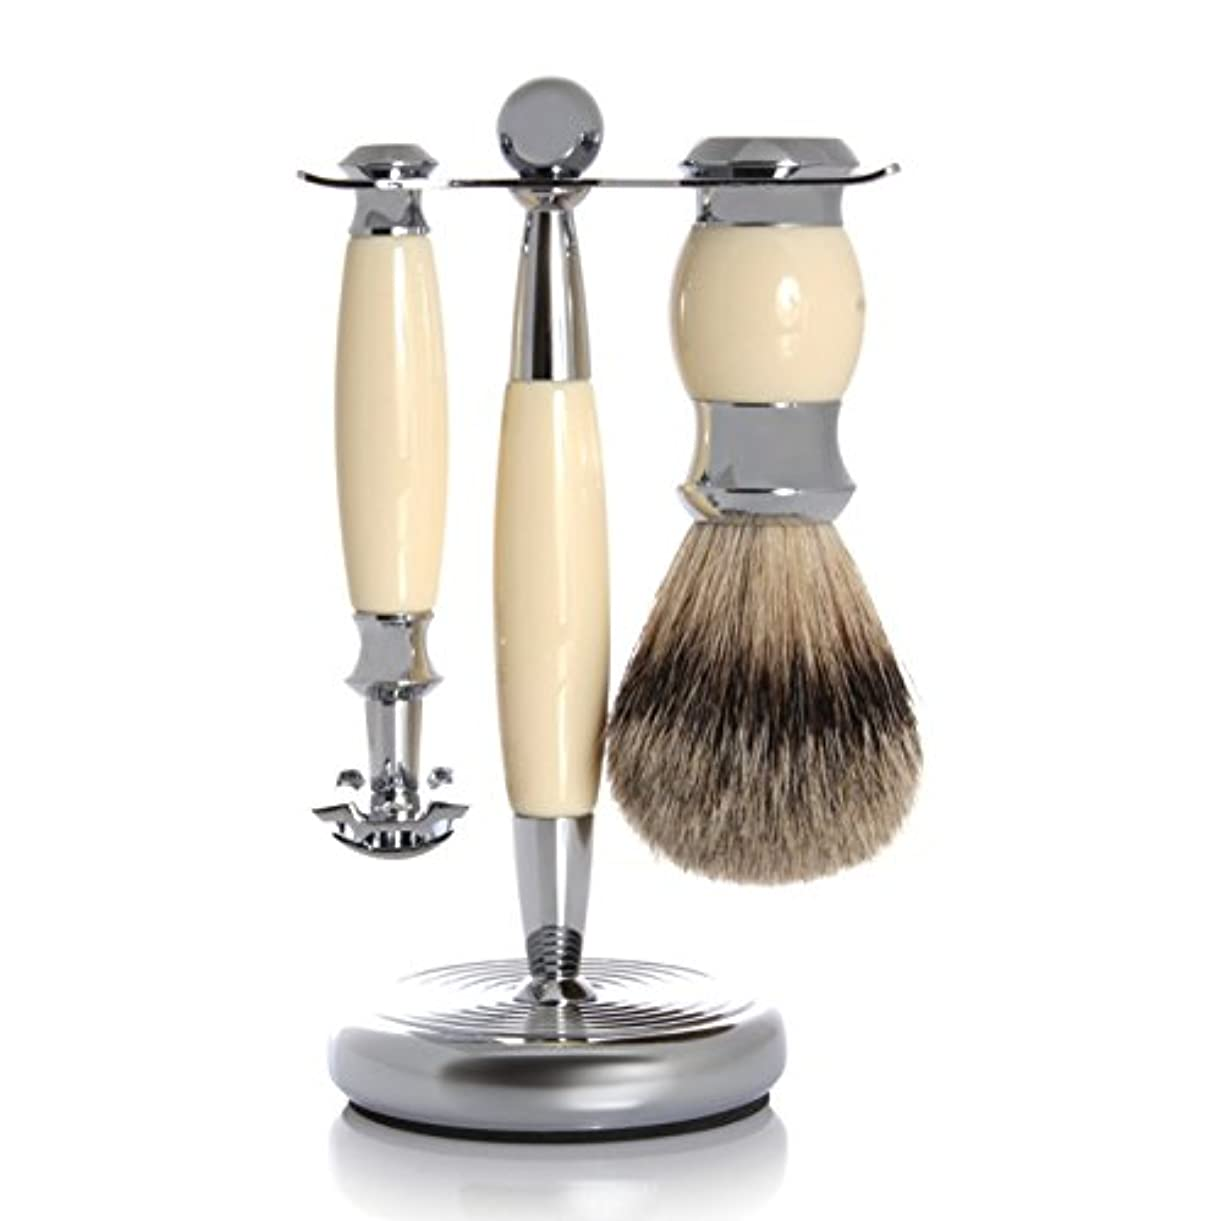 ビルダー感度積極的にGOLDDACHS Shaving Set, Safety razor, Finest Badger, white/silver